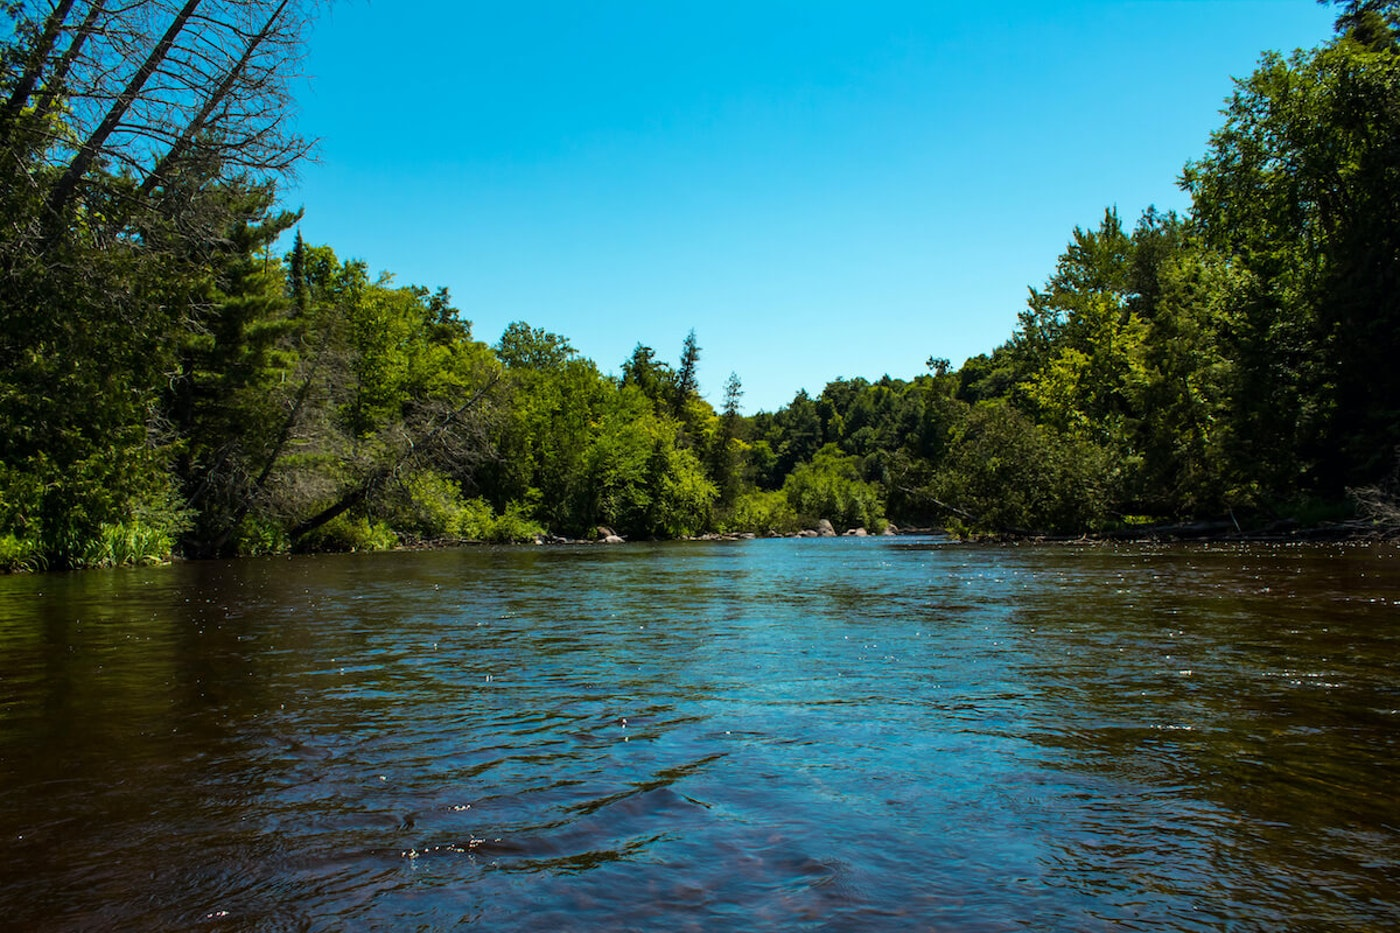 Wisconsin's Wolf River (Image via Shutterstock)